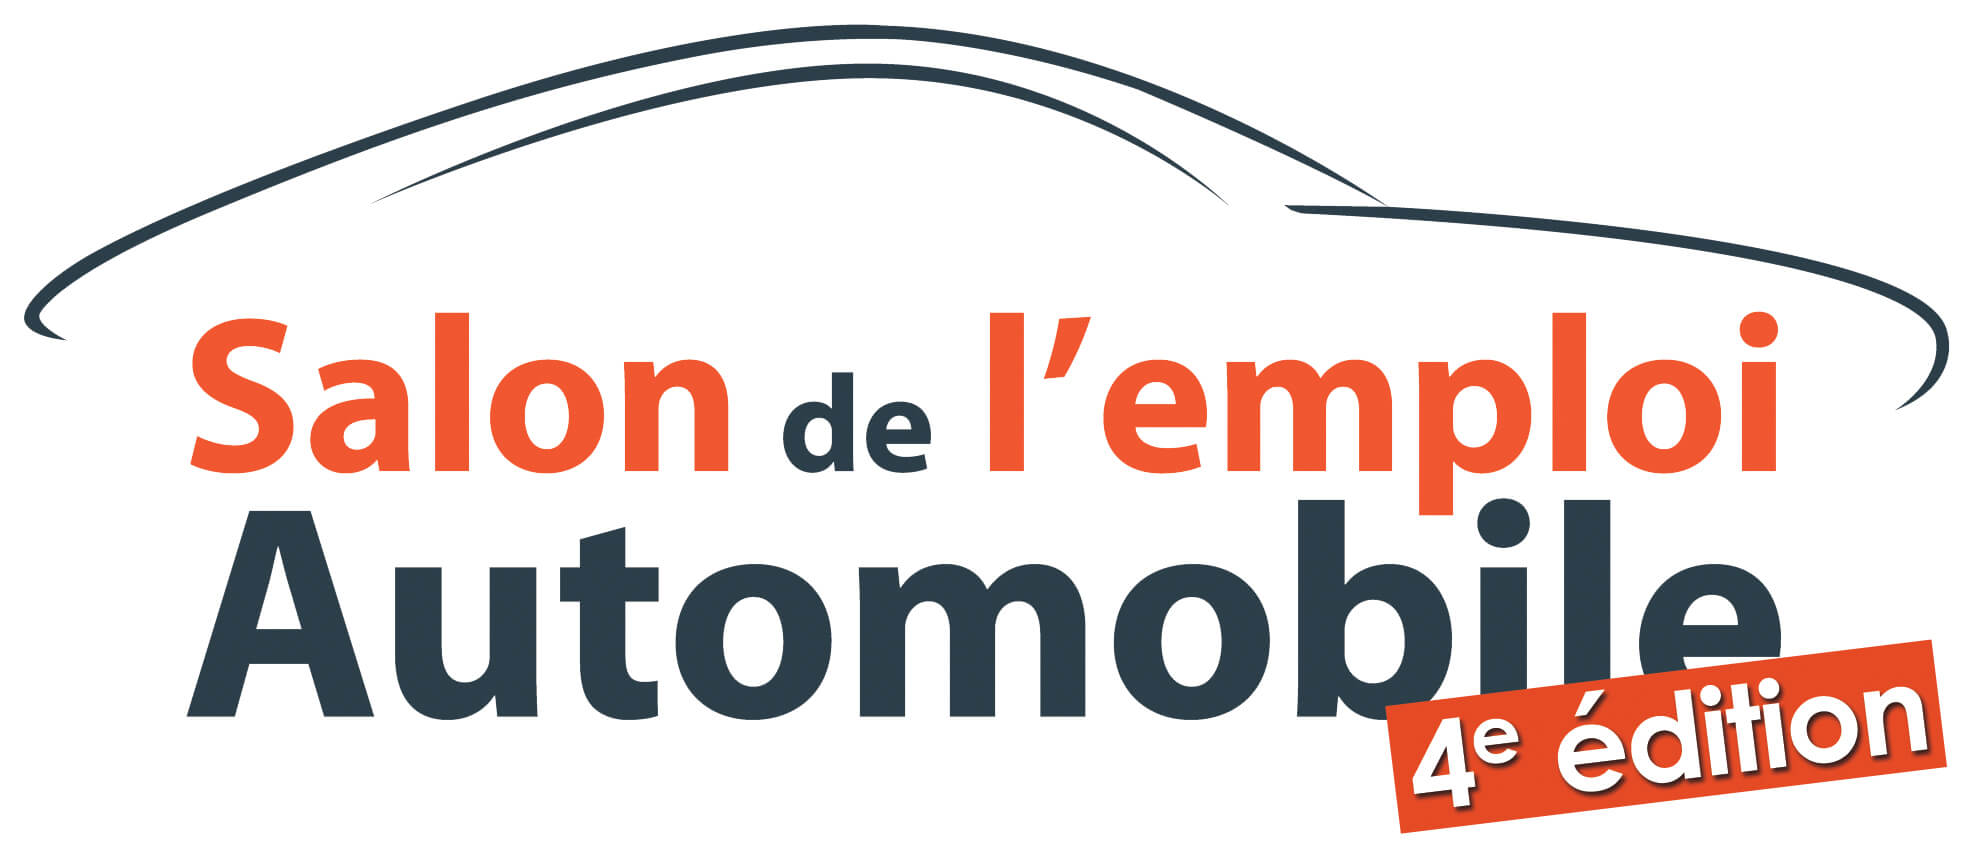 salon-de-lemploi-automobile-logo